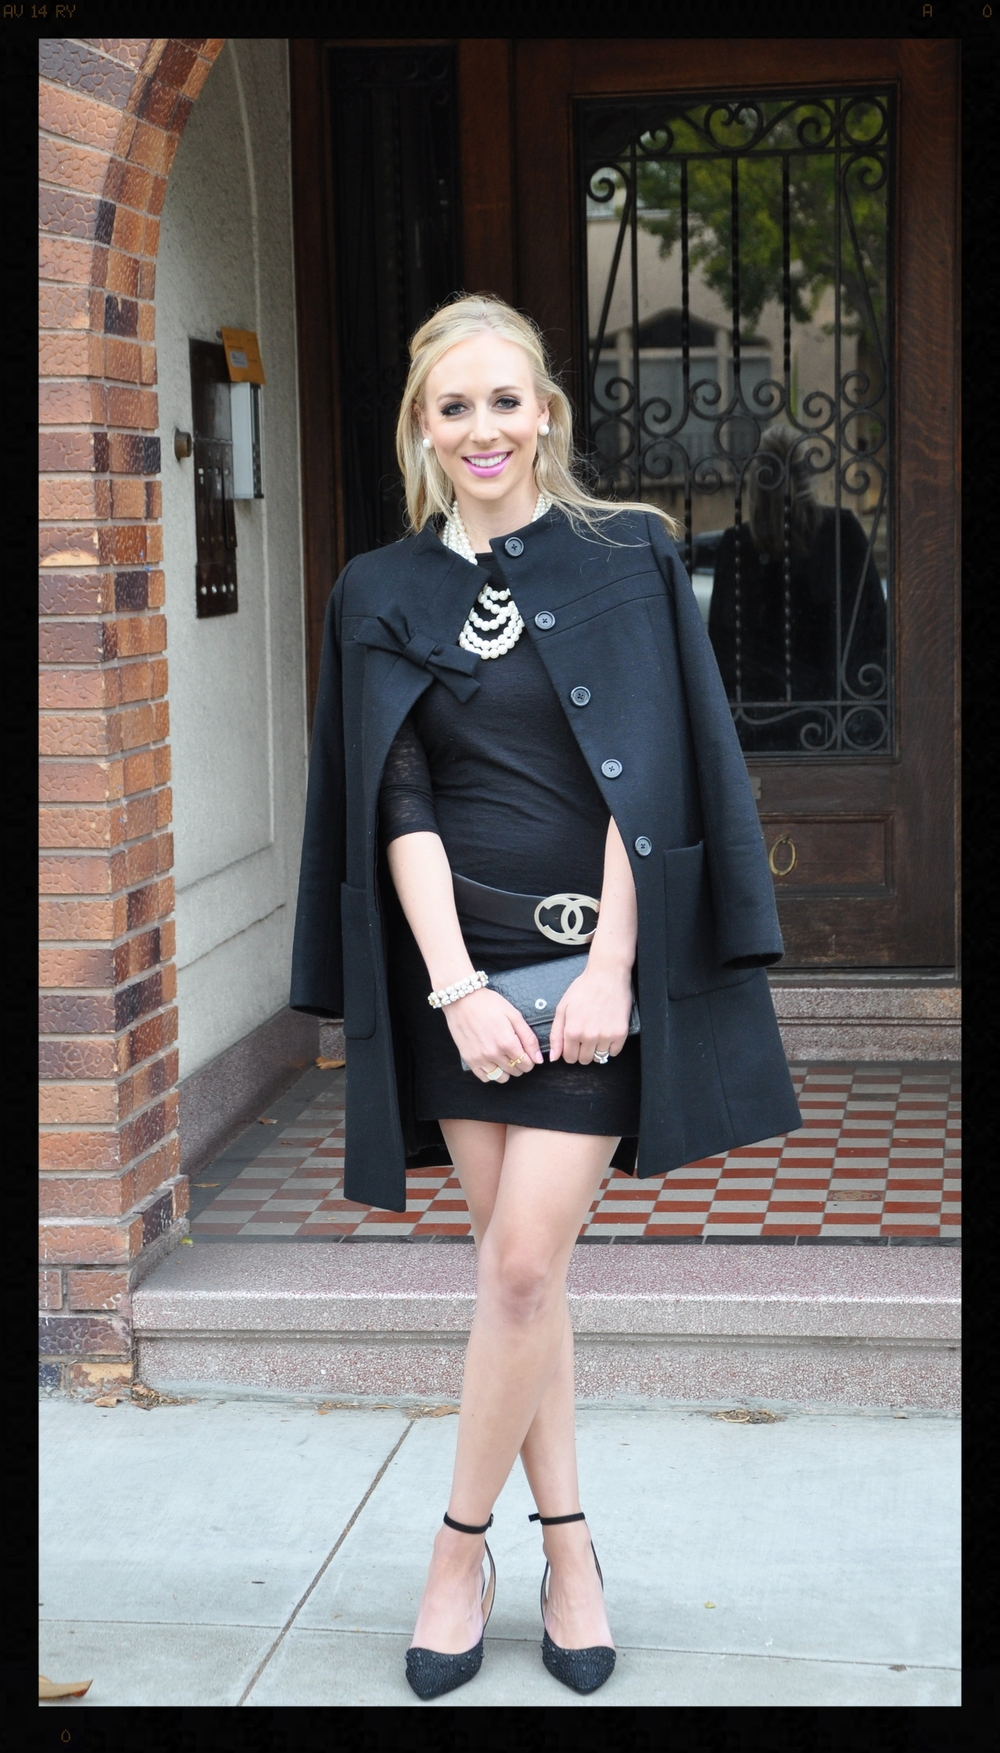 |||   coat :  j.crew  ||   dress :  rag & bone, karlie.  ||   belt:   chanel   ||   shoes :  zara  ||  clutch :  coach.  ||  necklace :  kate spade  |||